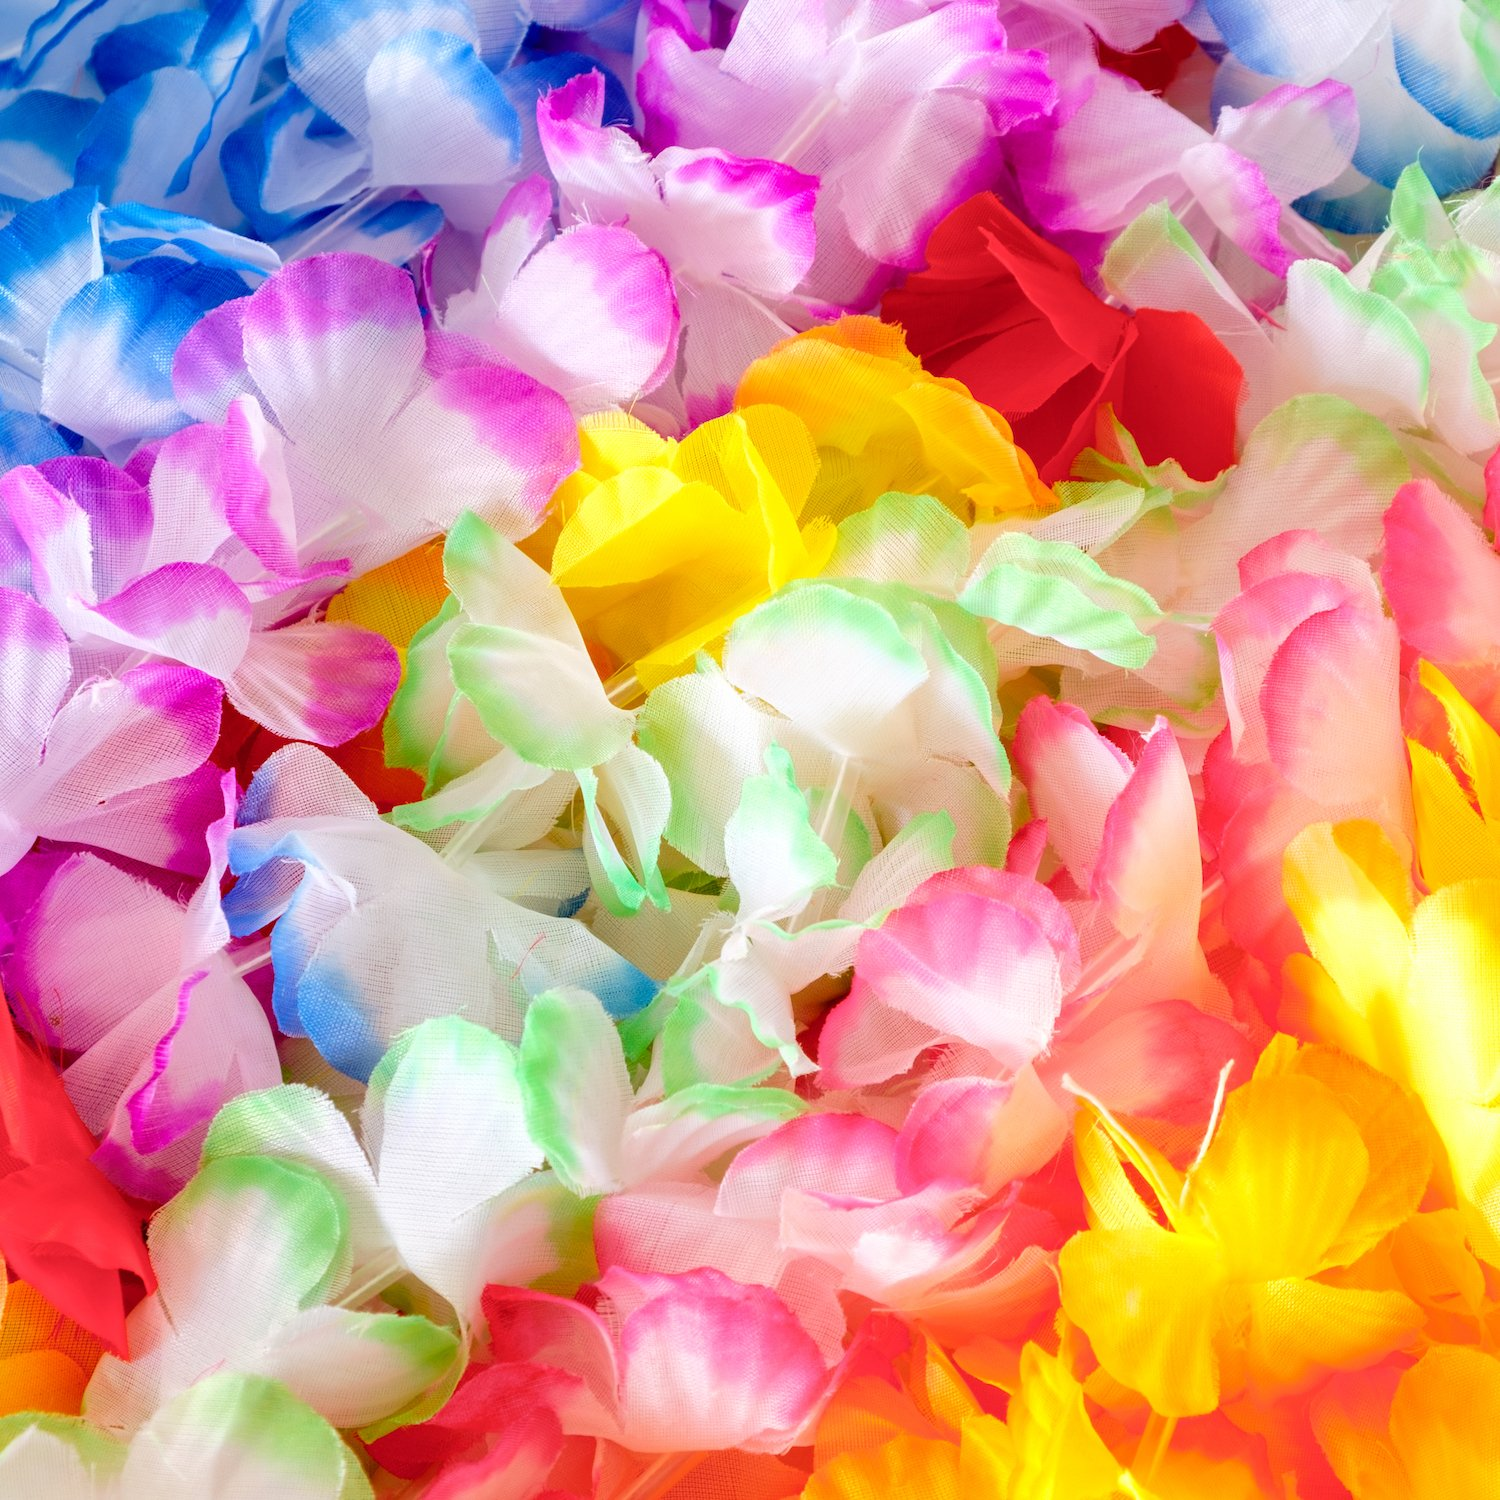 Amazon hawaiian leis flower necklace party 36 count tropical amazon hawaiian leis flower necklace party 36 count tropical soft silk graduation lei premium luau supplies vibrant leys and multi colored favors izmirmasajfo